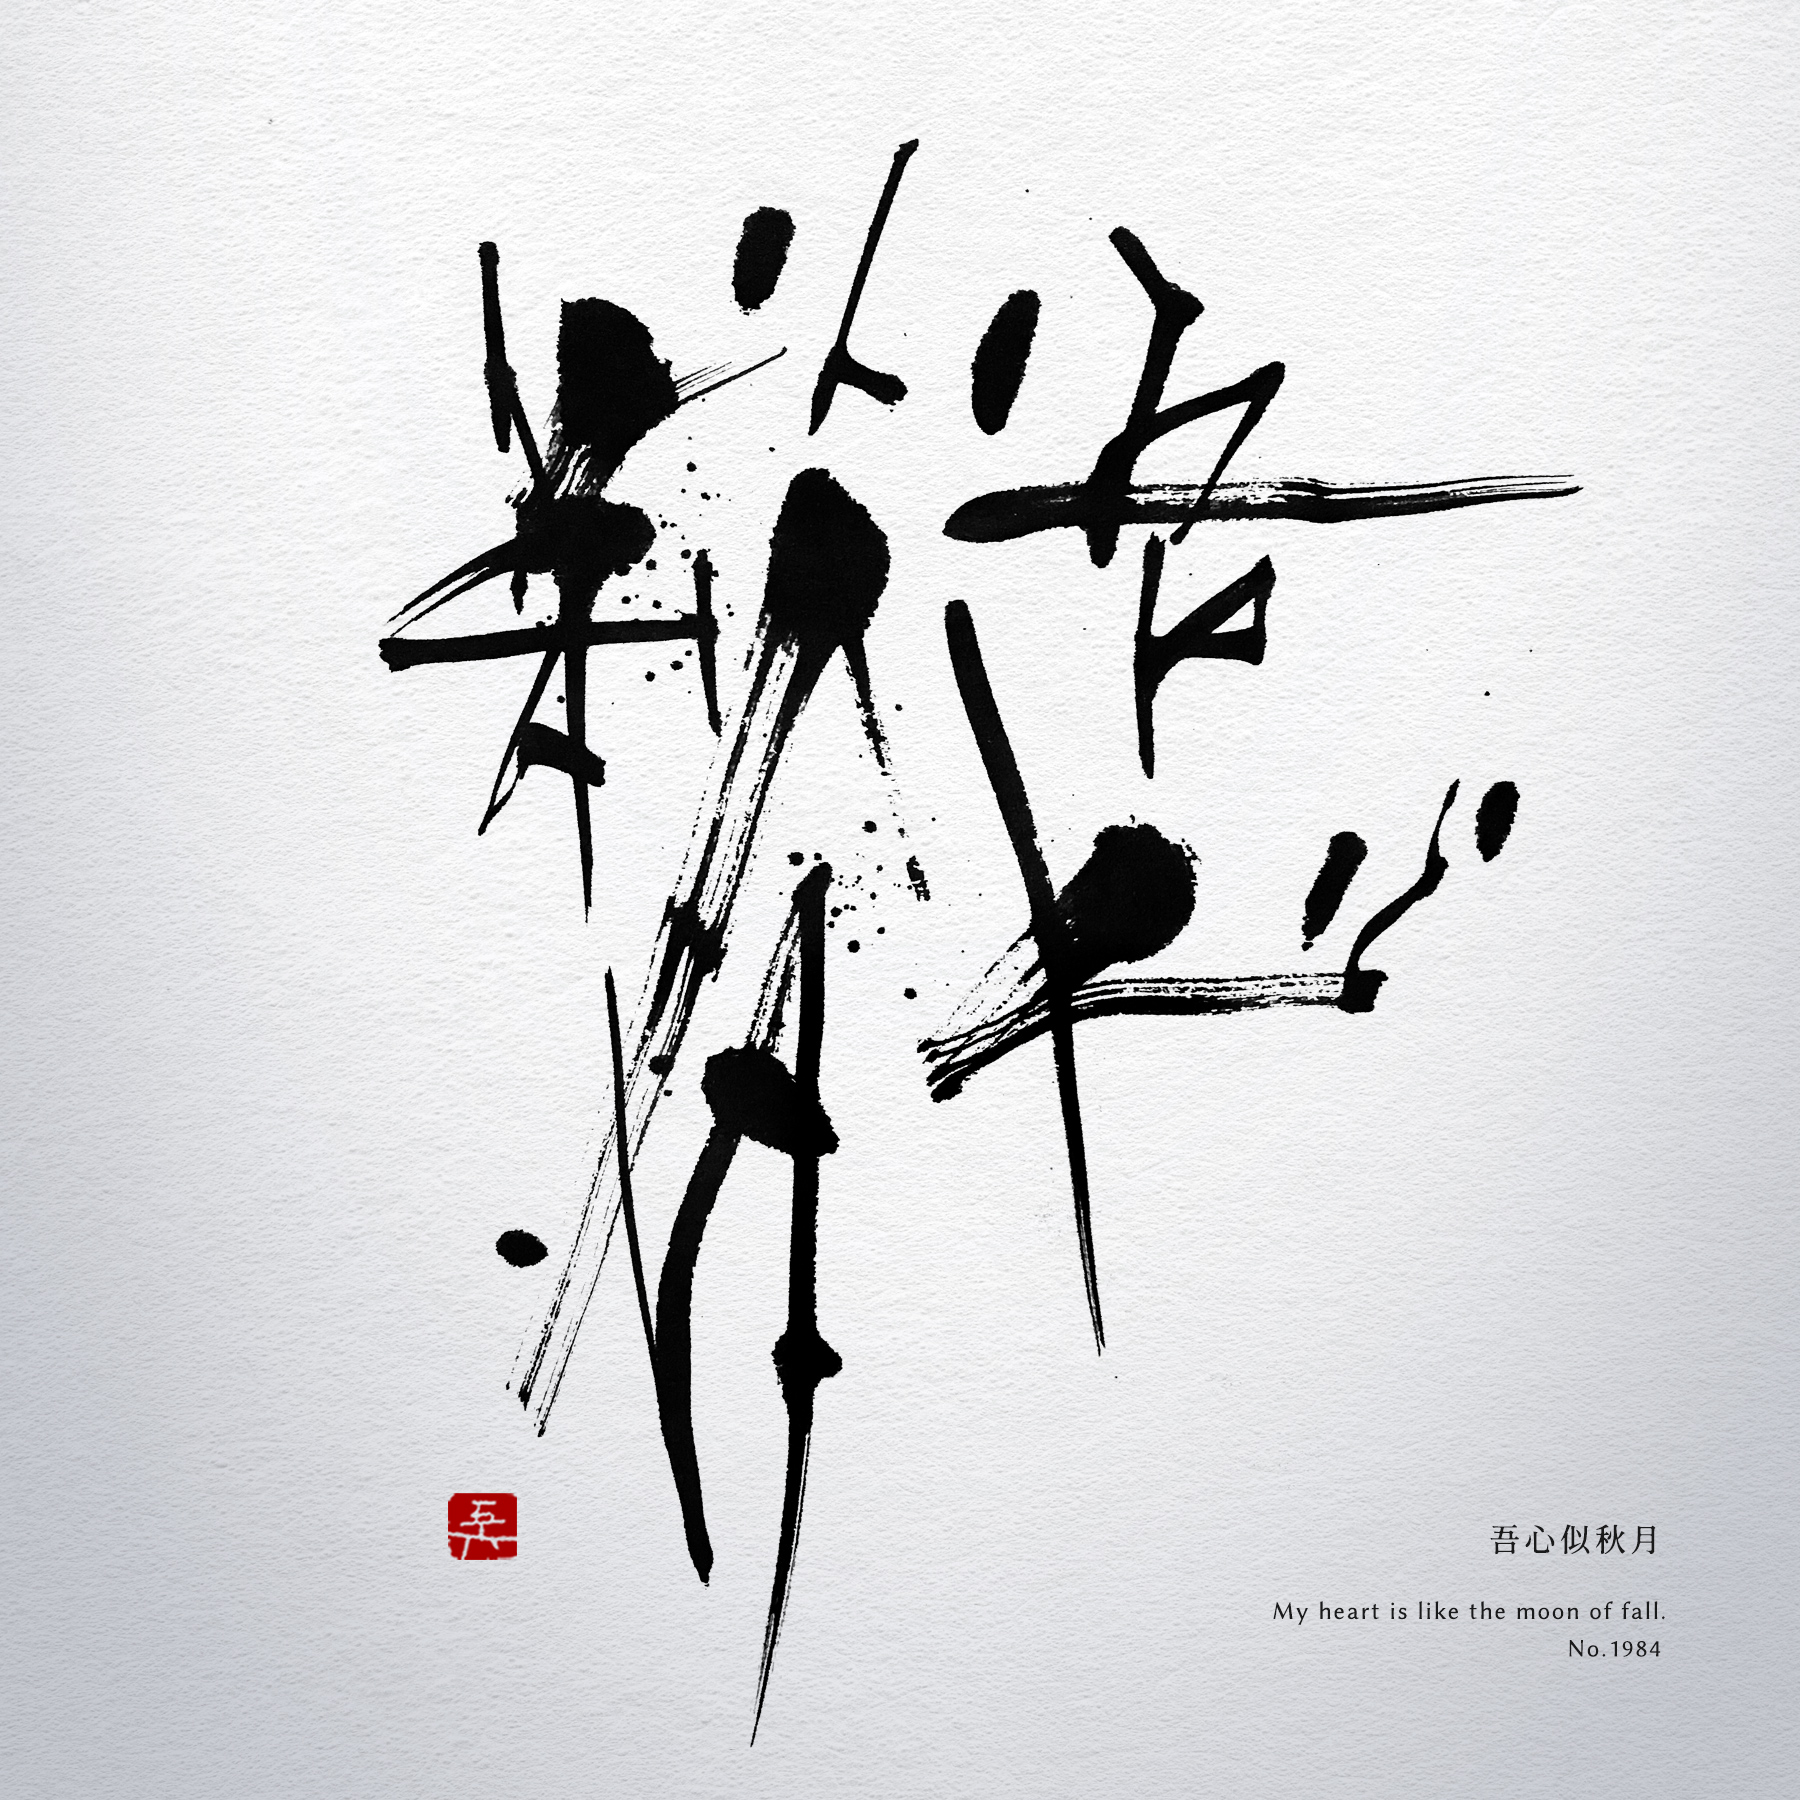 吾心似秋月 | like the moon of fall 書道作品 japaneseart japanese calligraphy 書家 田川悟郎 Goroh Tagawa